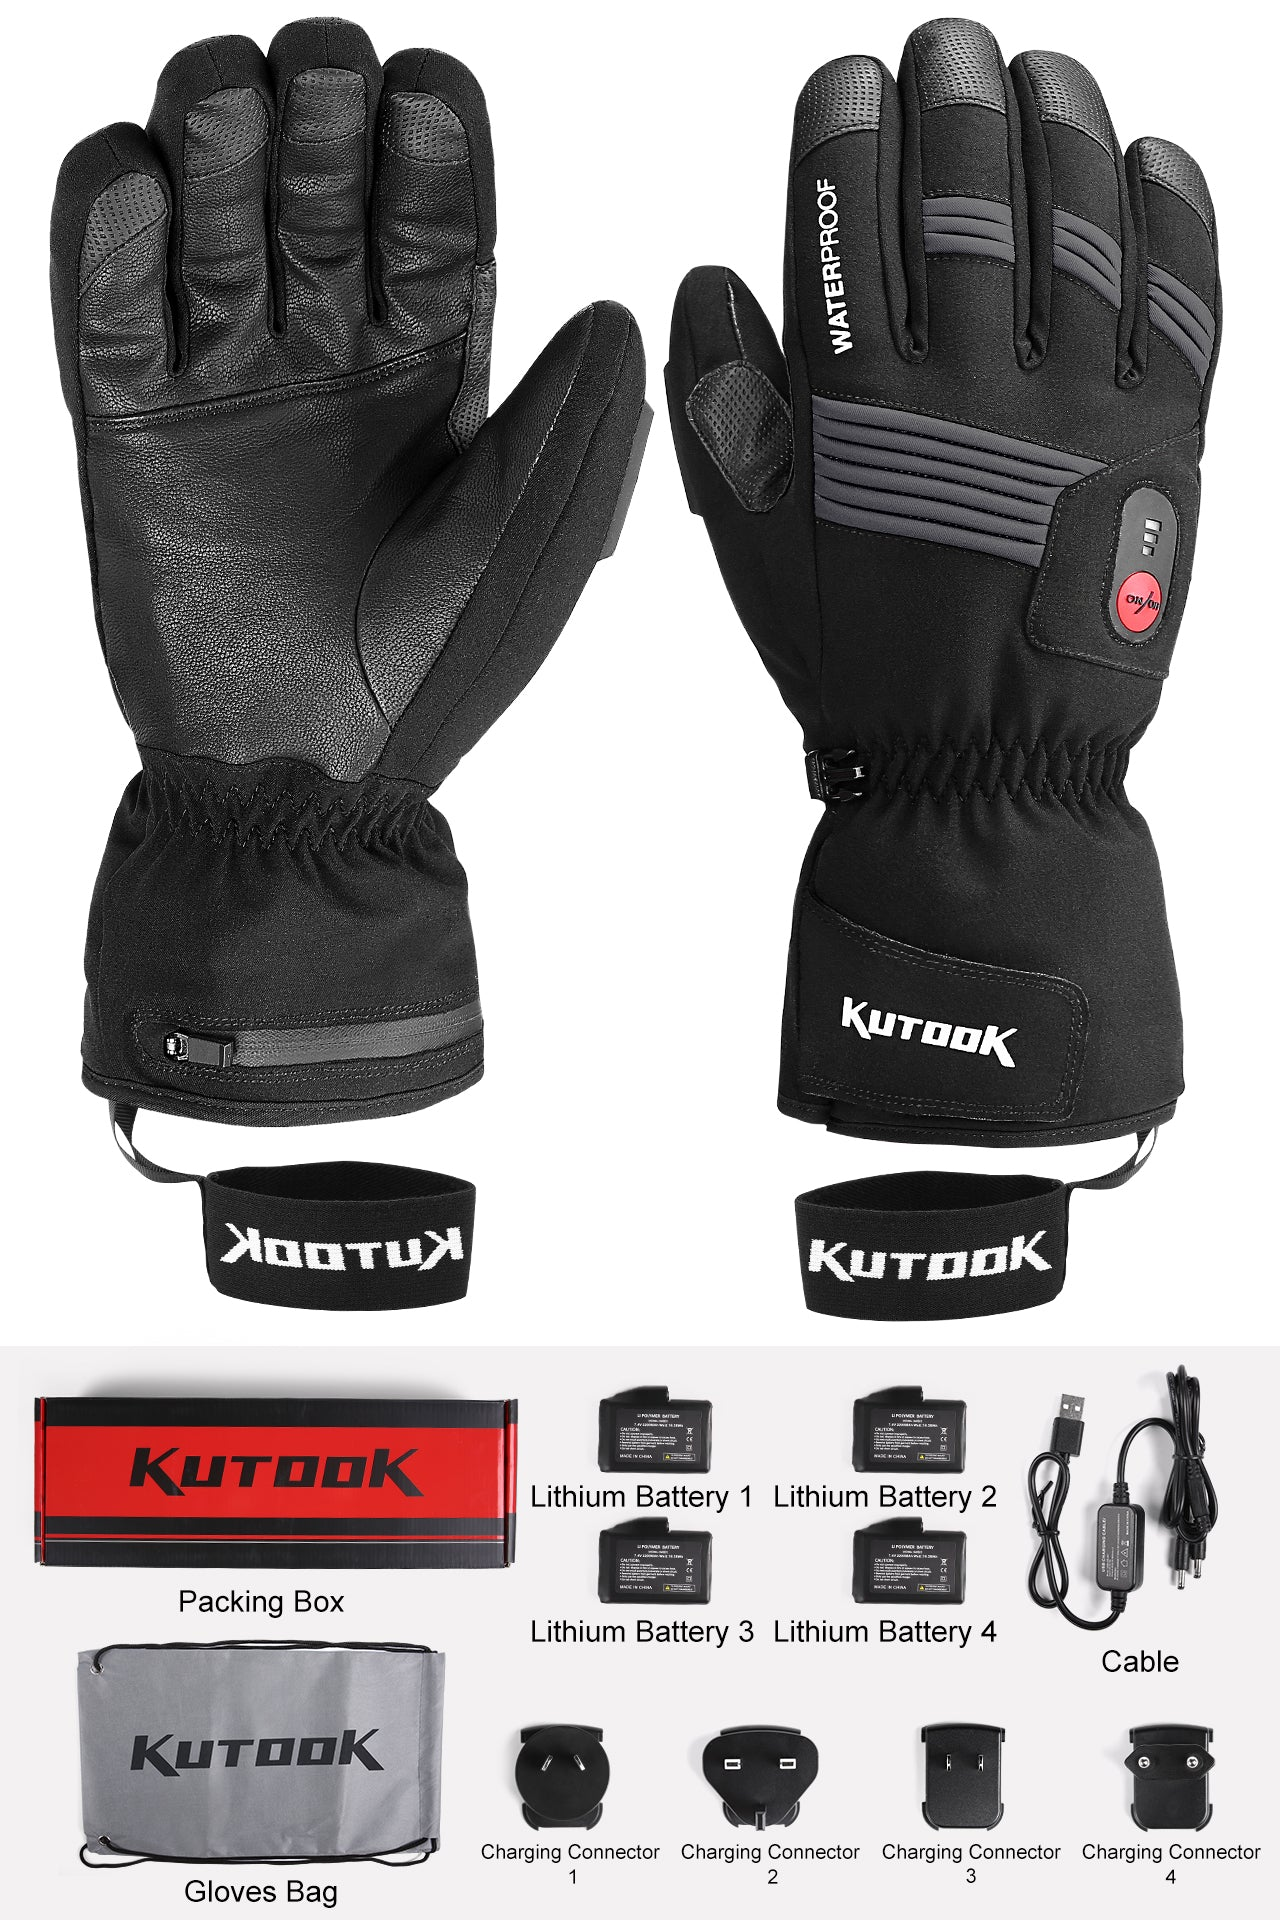 Kutook Electric Heated Glove for Skiing Motorcycling & Various Winter Activities